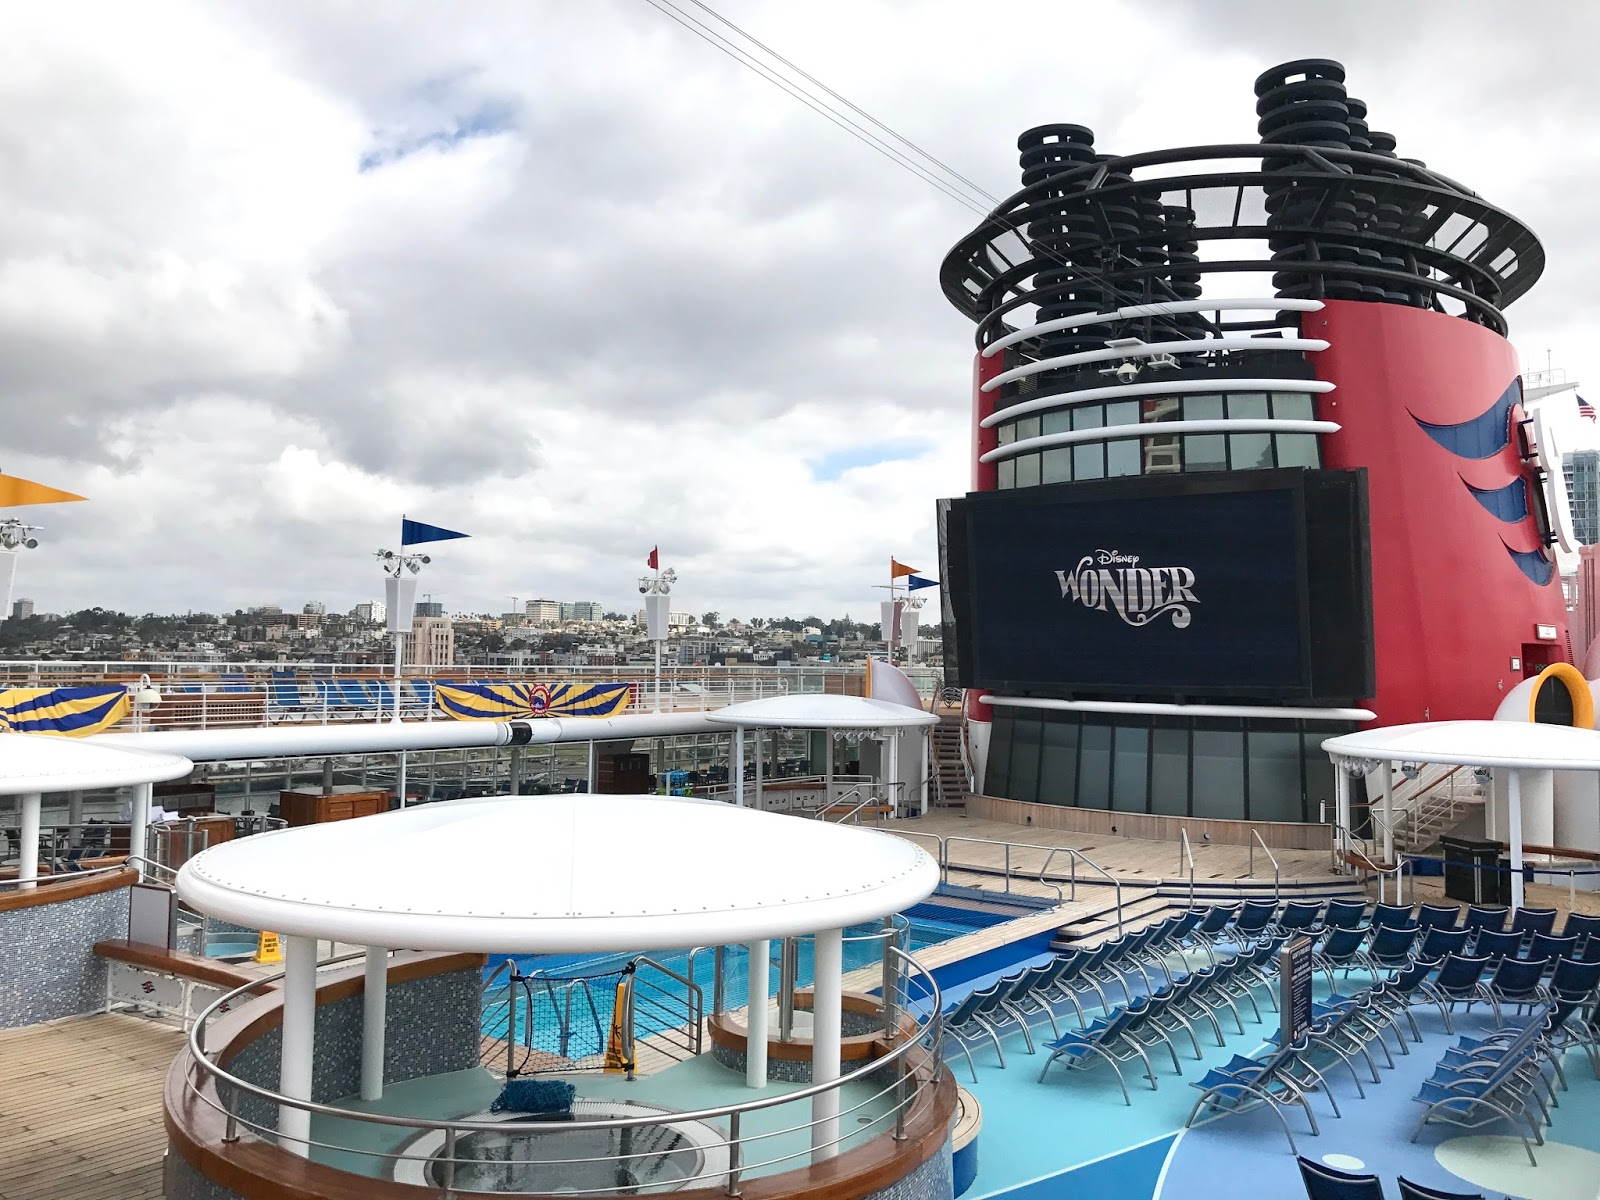 Disney Wonder Pool, Disney Wonder Activities